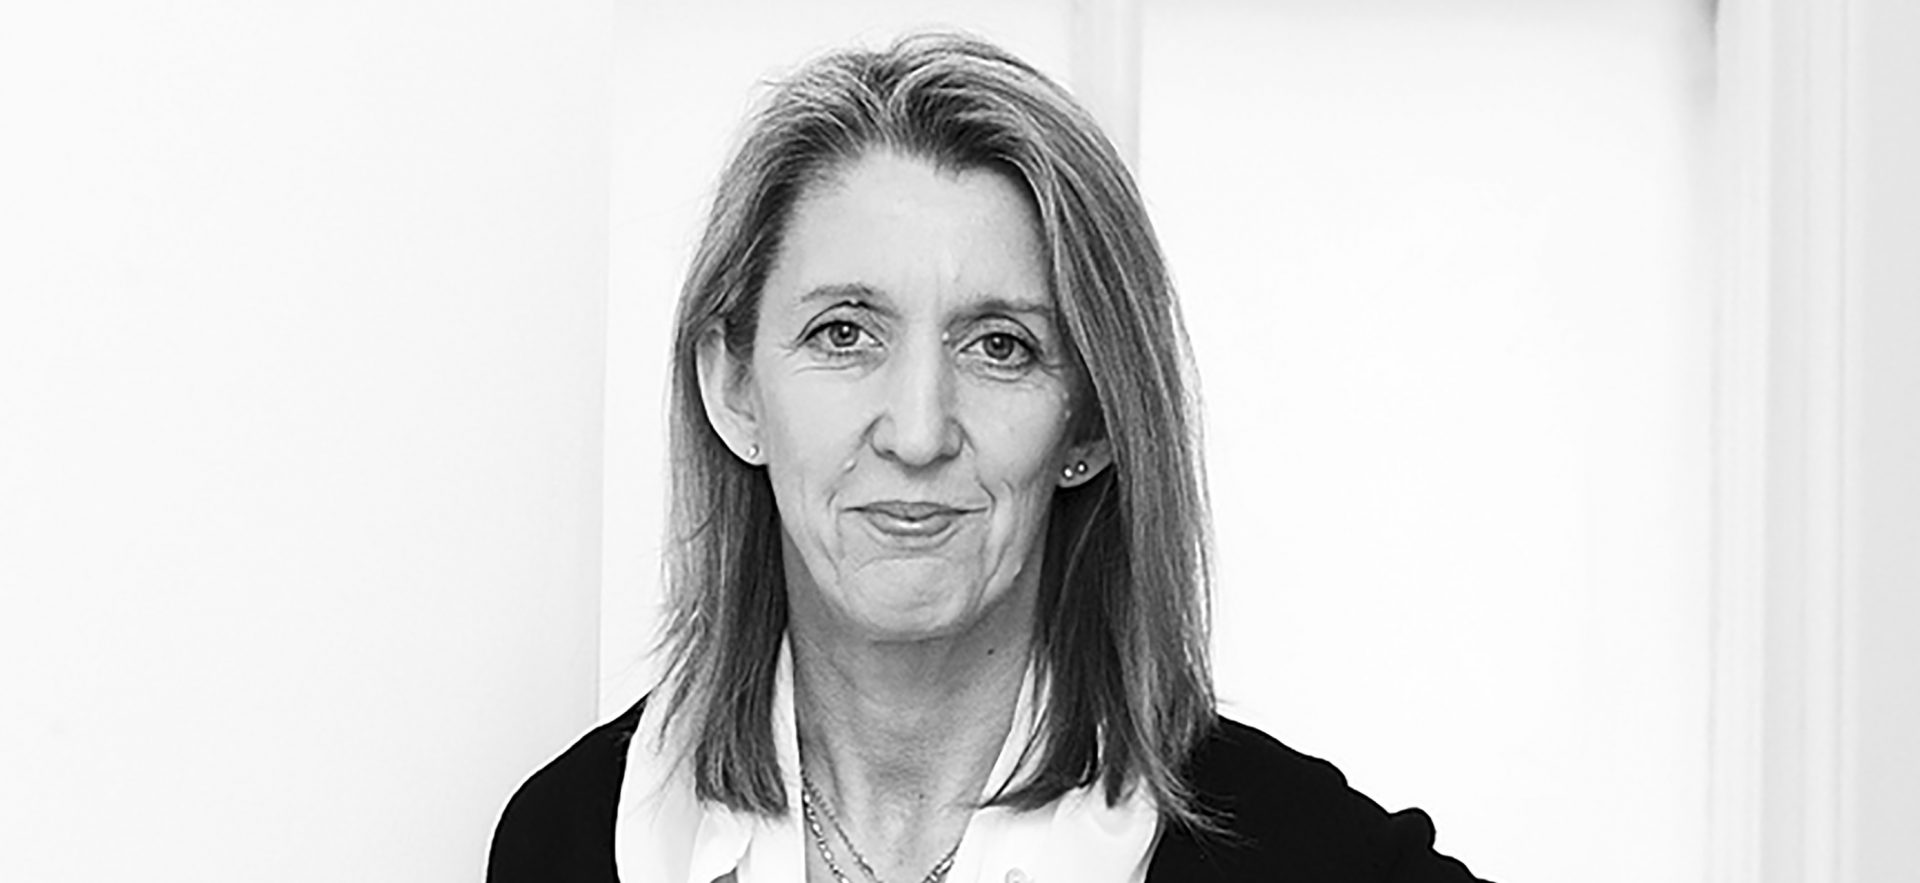 Profile image of Fiona Thompson